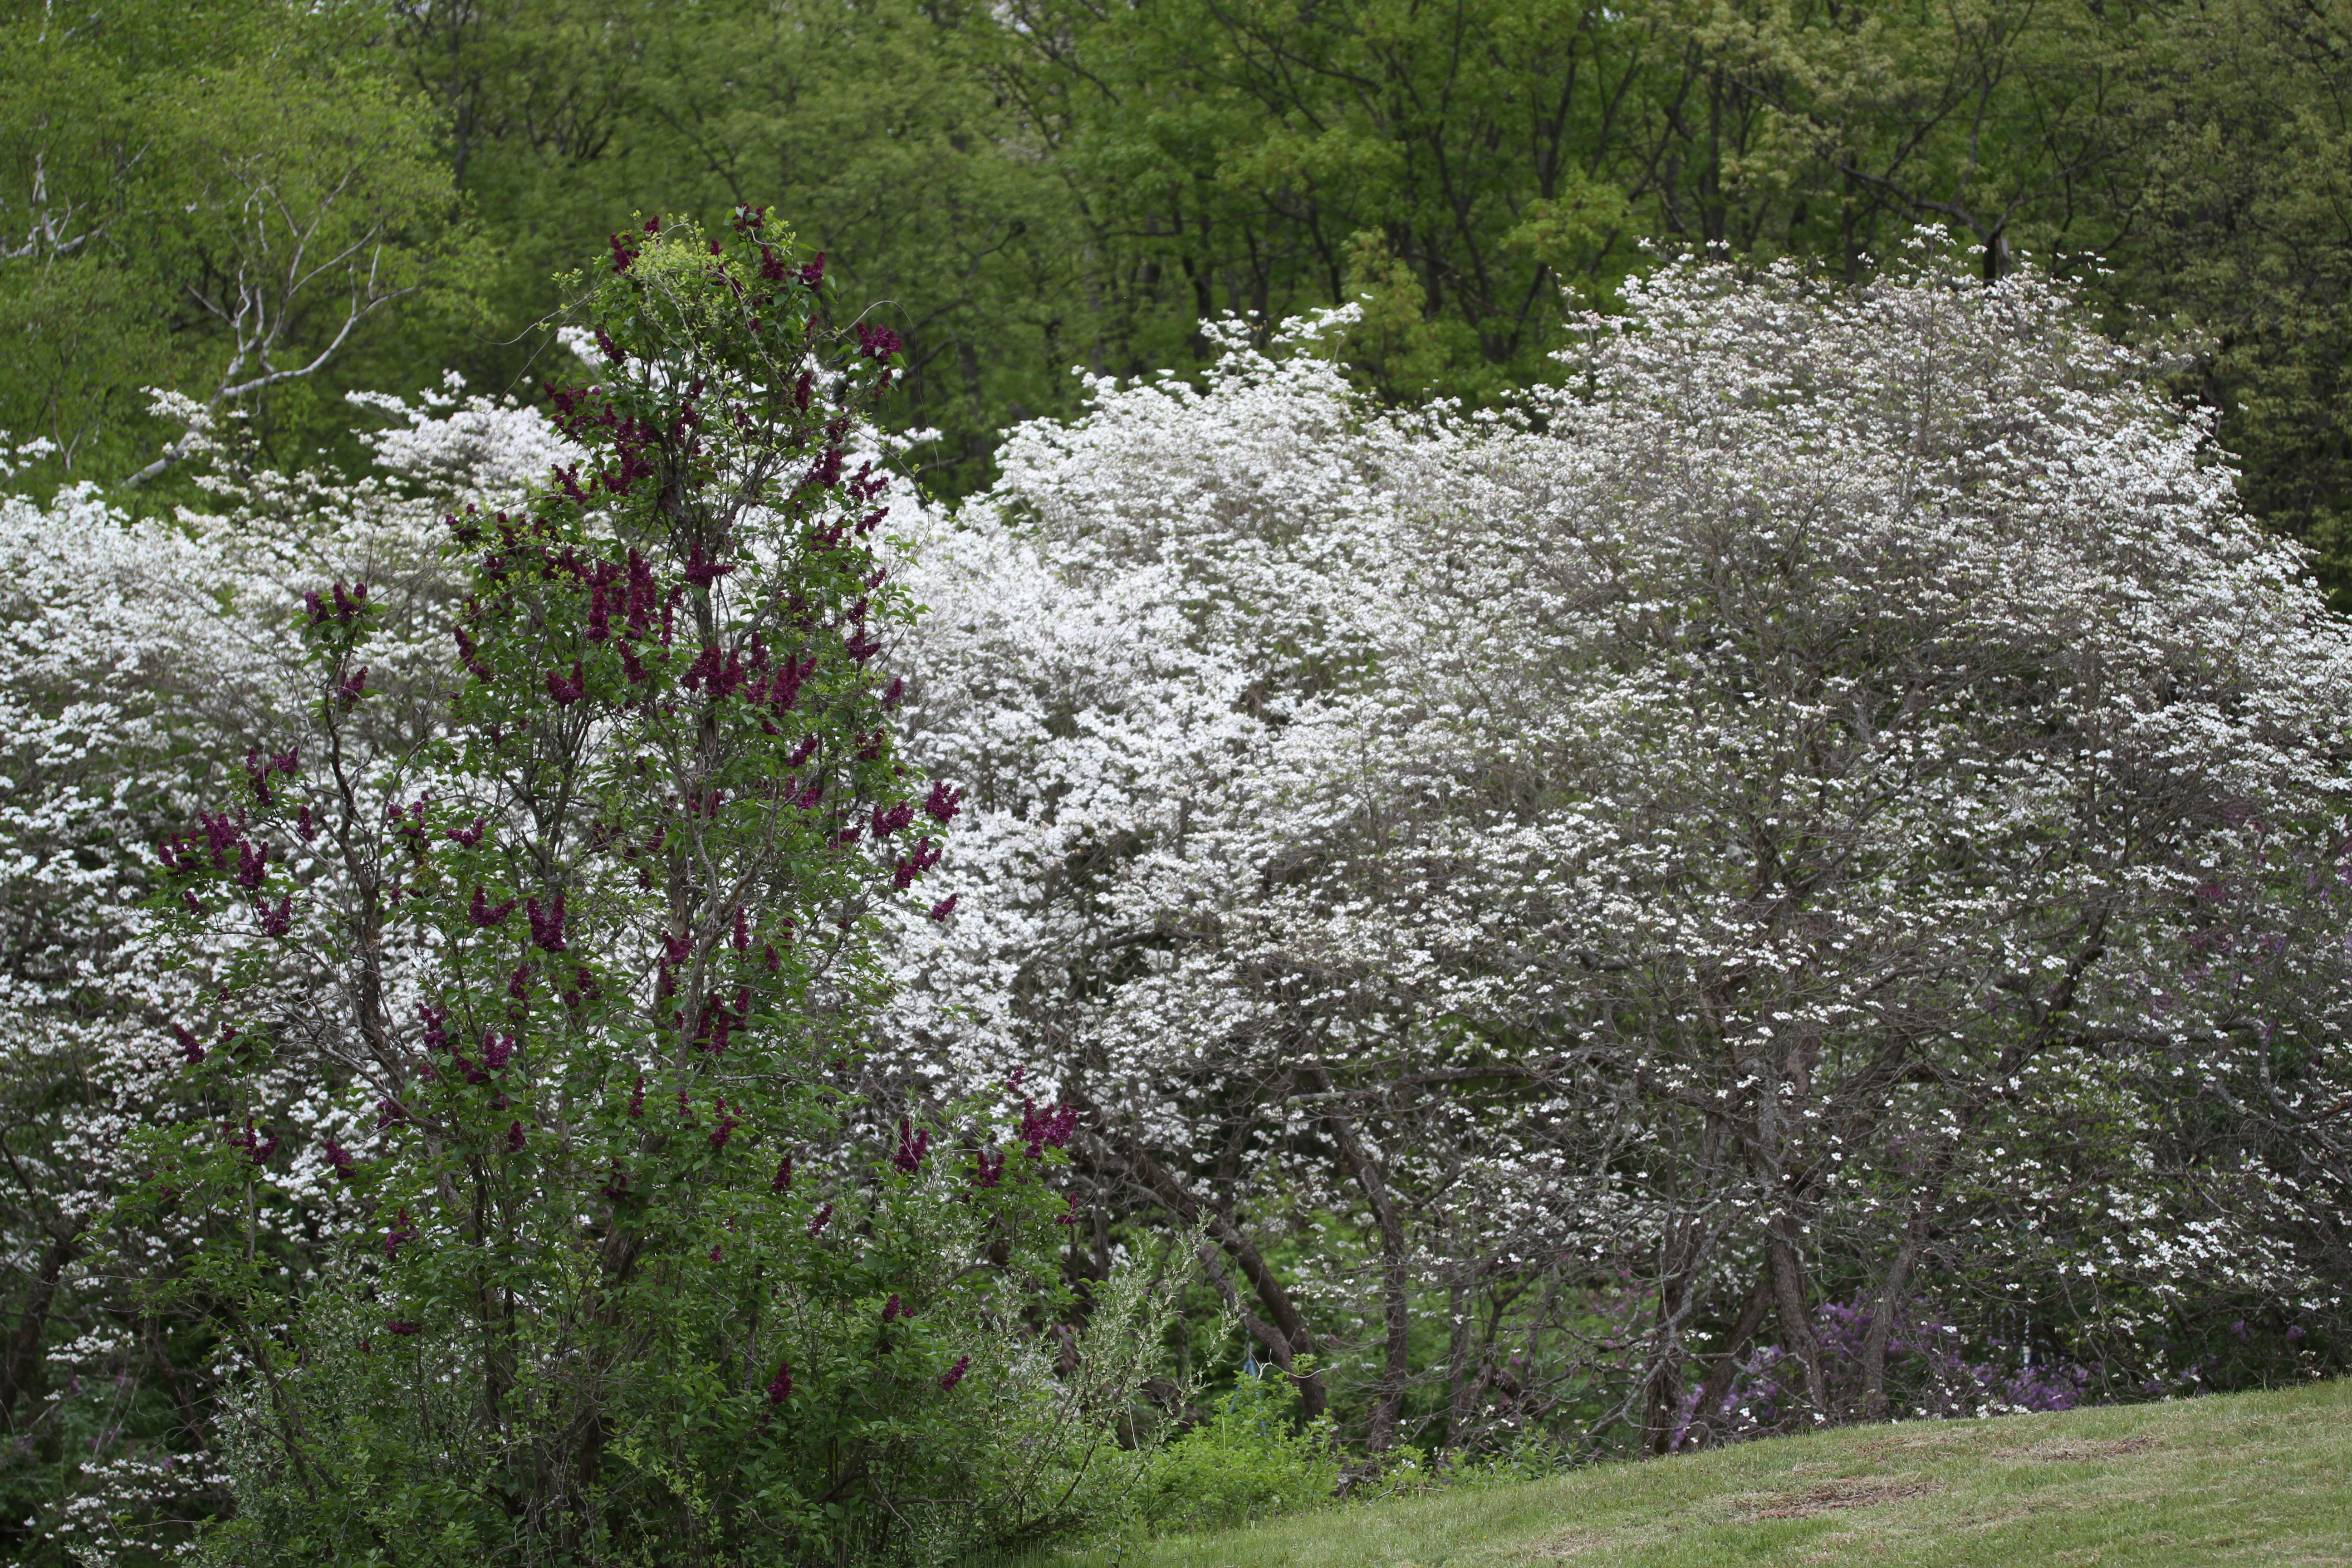 Dogwoods and lilacs and fruit trees all blooming in harmony.